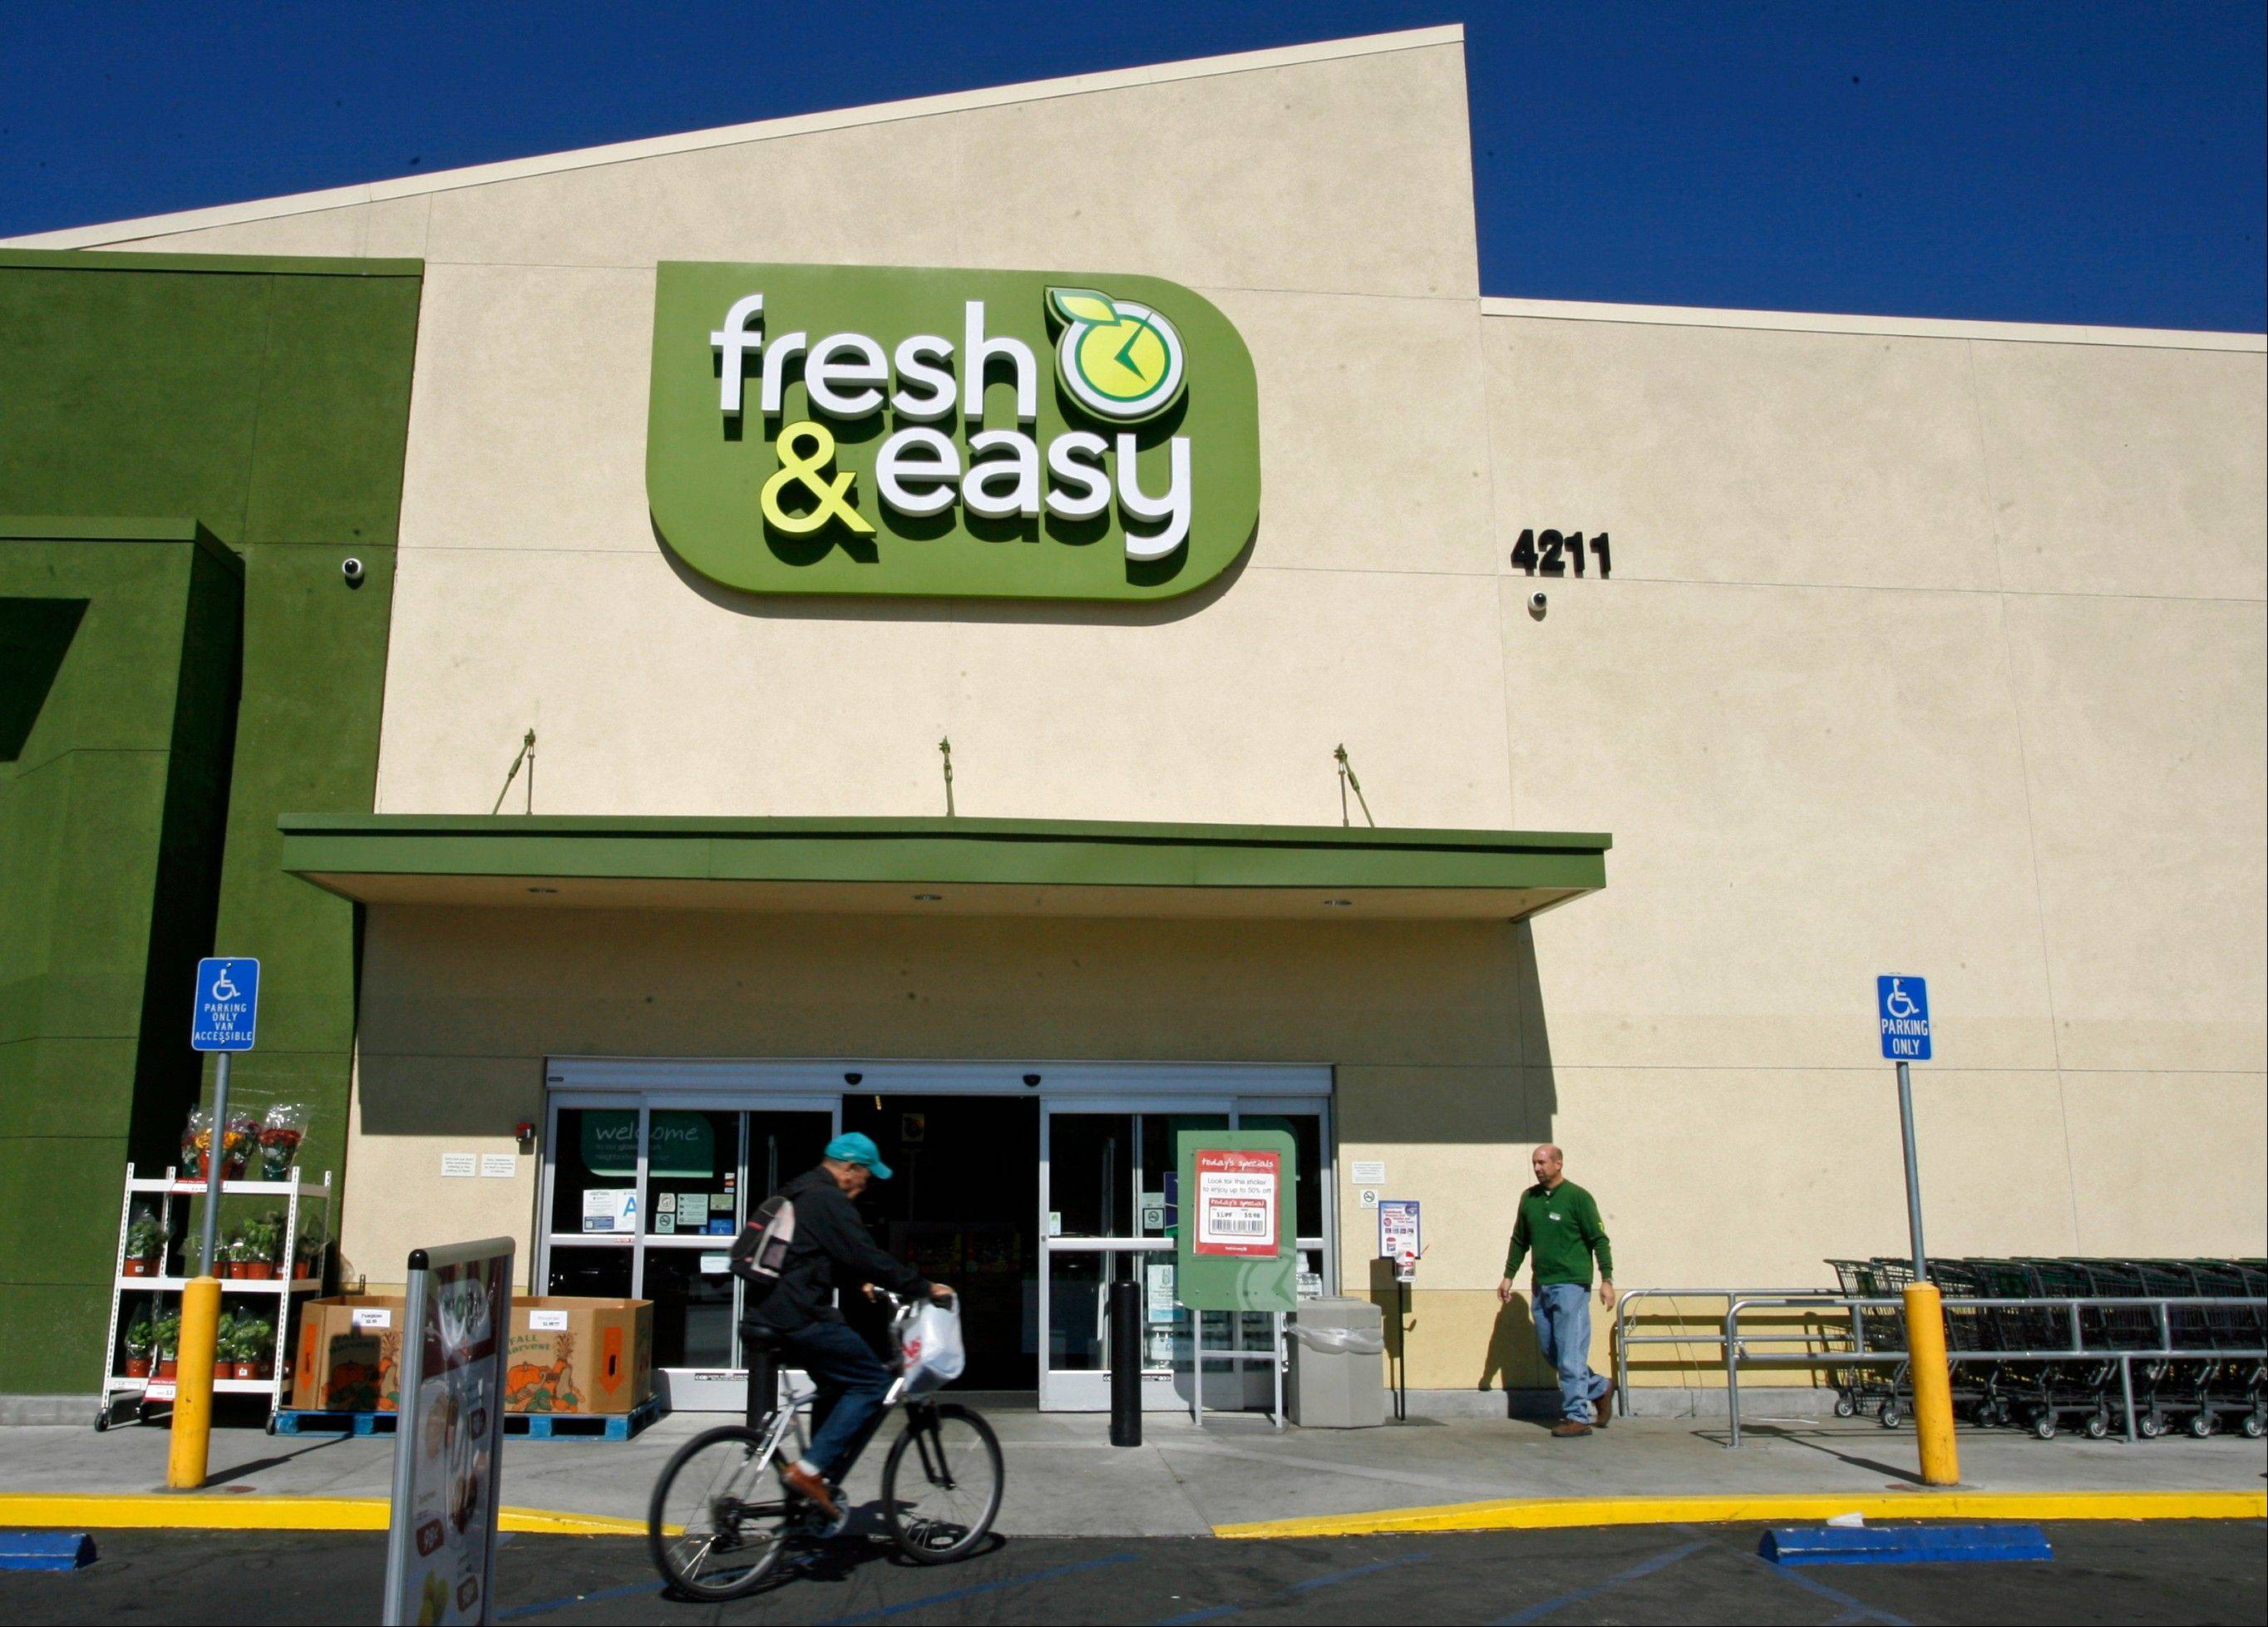 Tesco, Britain�s biggest retailer, is reviewing options for its slow-growing U.S. venture, Fresh & Easy. The company also announced Wednesday that the chief executive of Fresh & Easy, Tim Mason, is leaving.